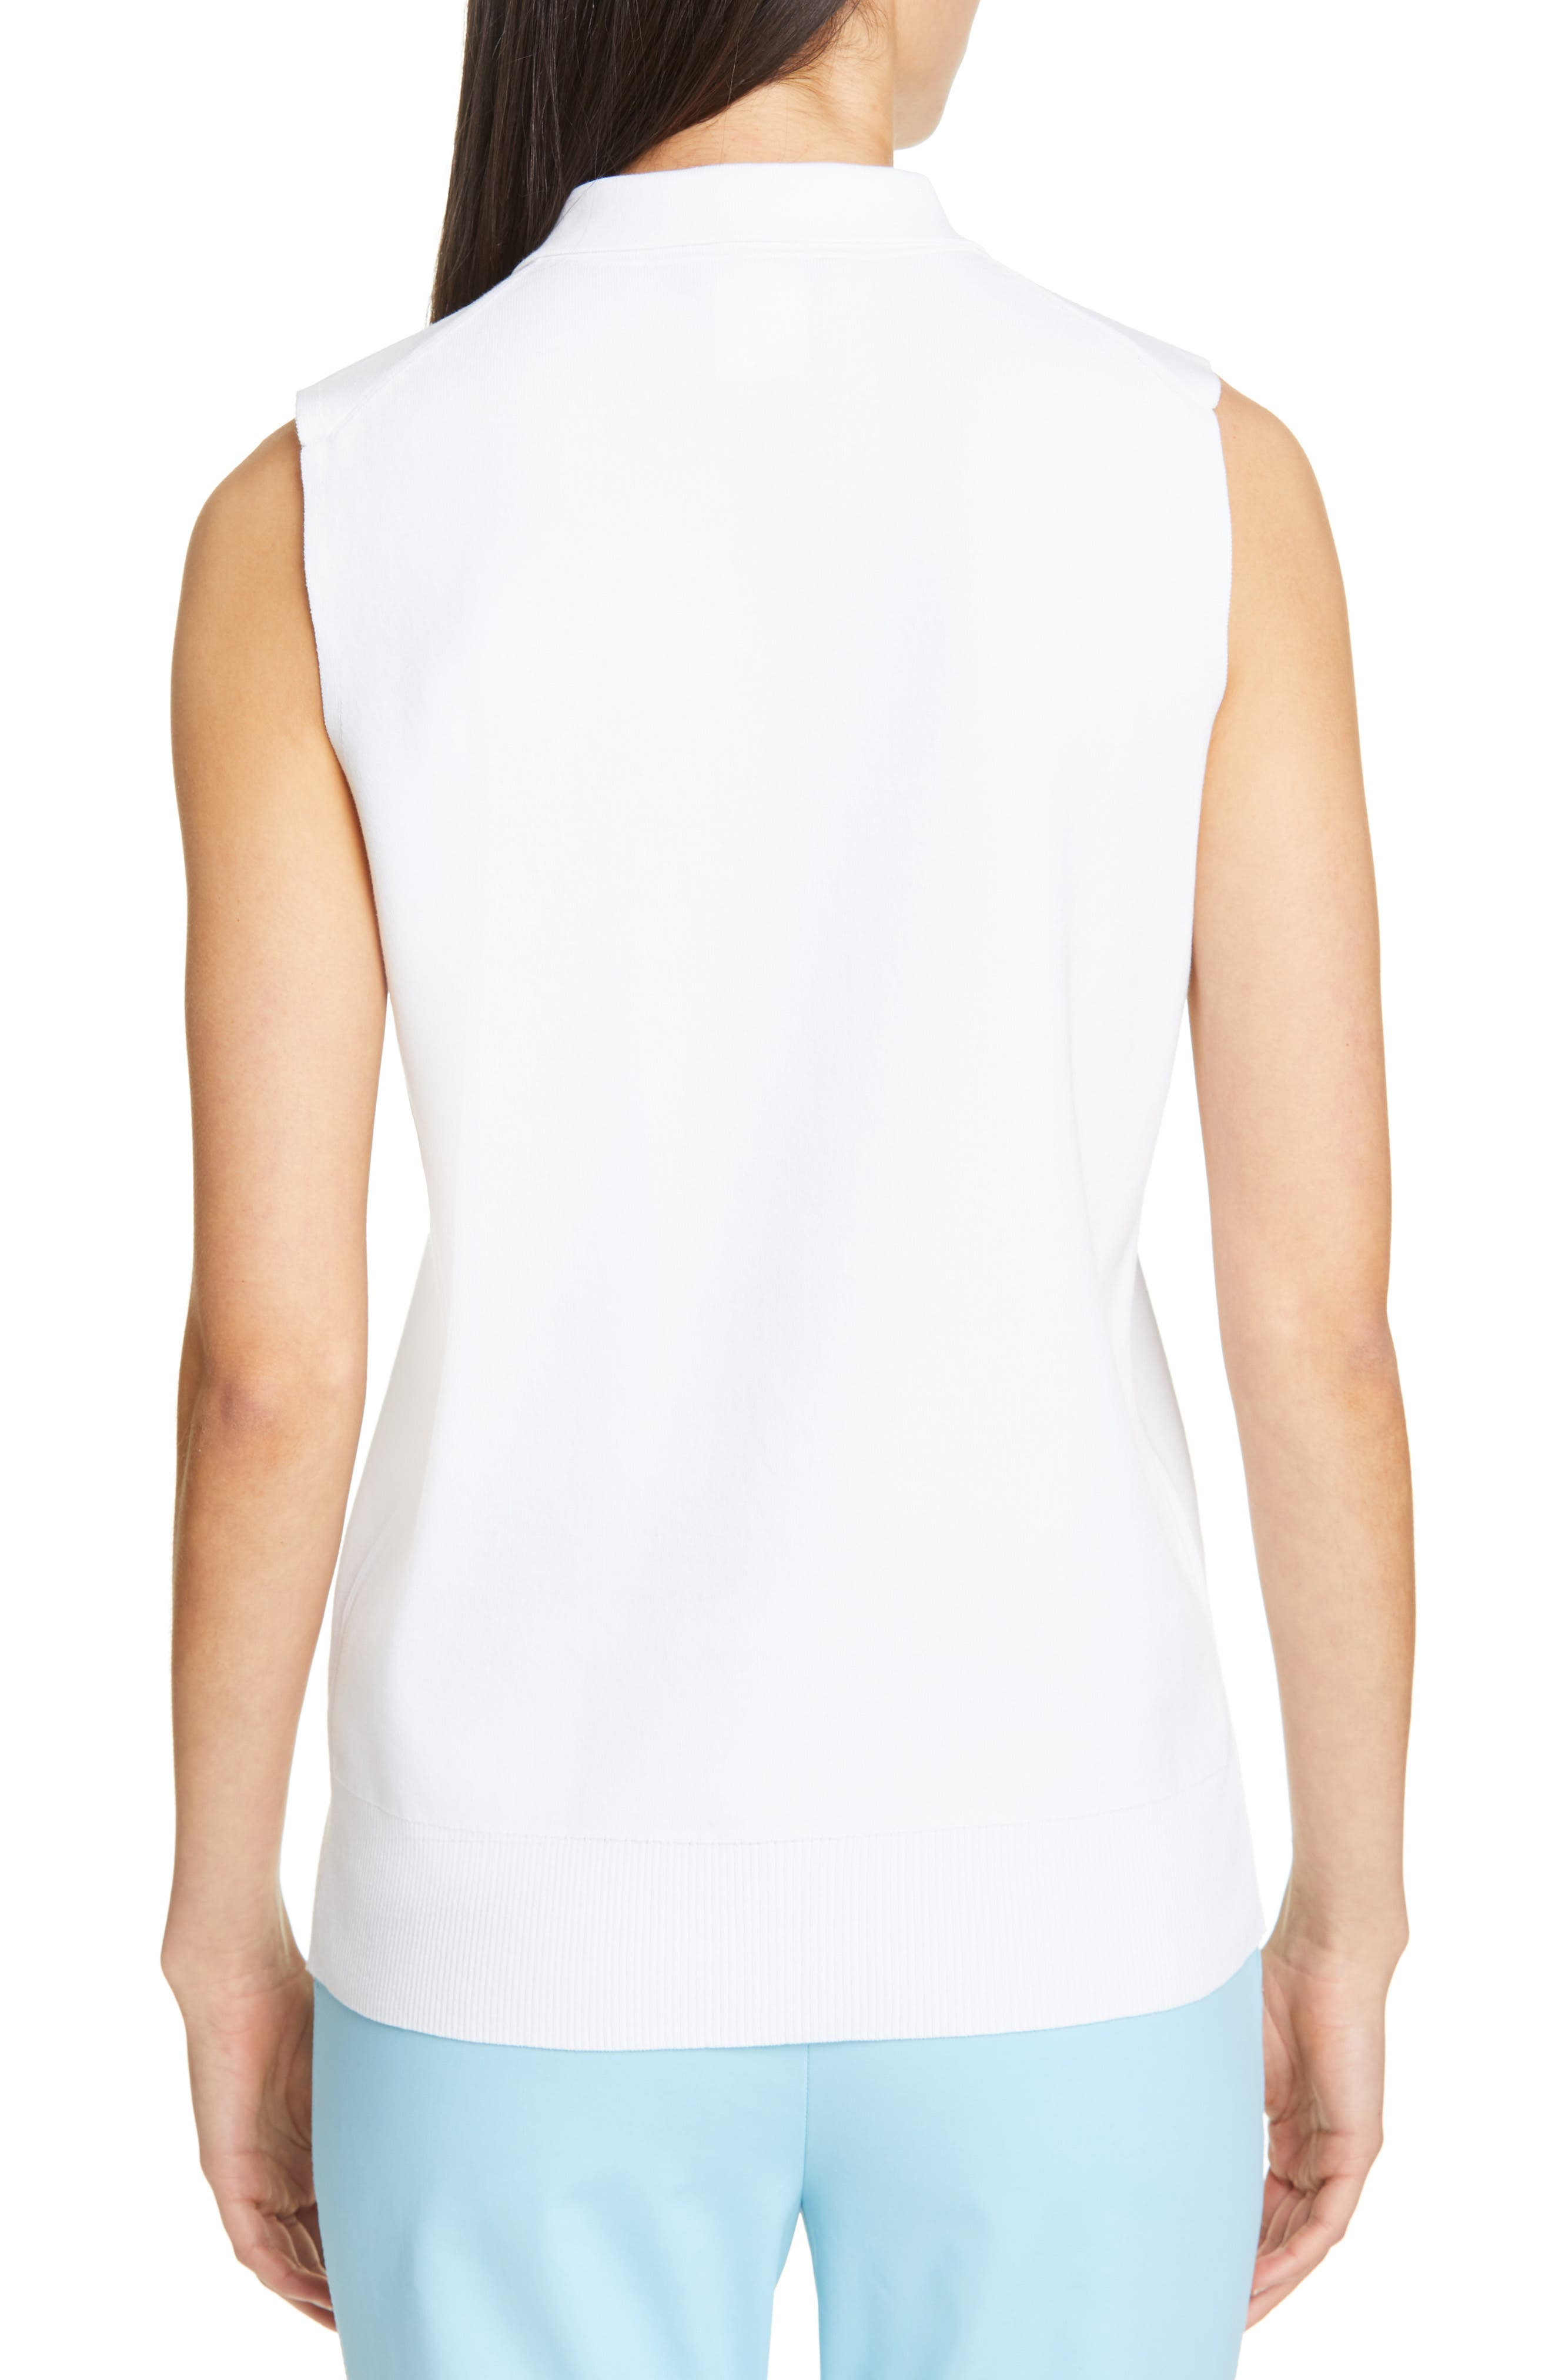 LAFAYETTE 148 NEW YORK, Lafayette Fitted Sleeveless Polo Sweater, Alternate thumbnail 2, color, WHITE